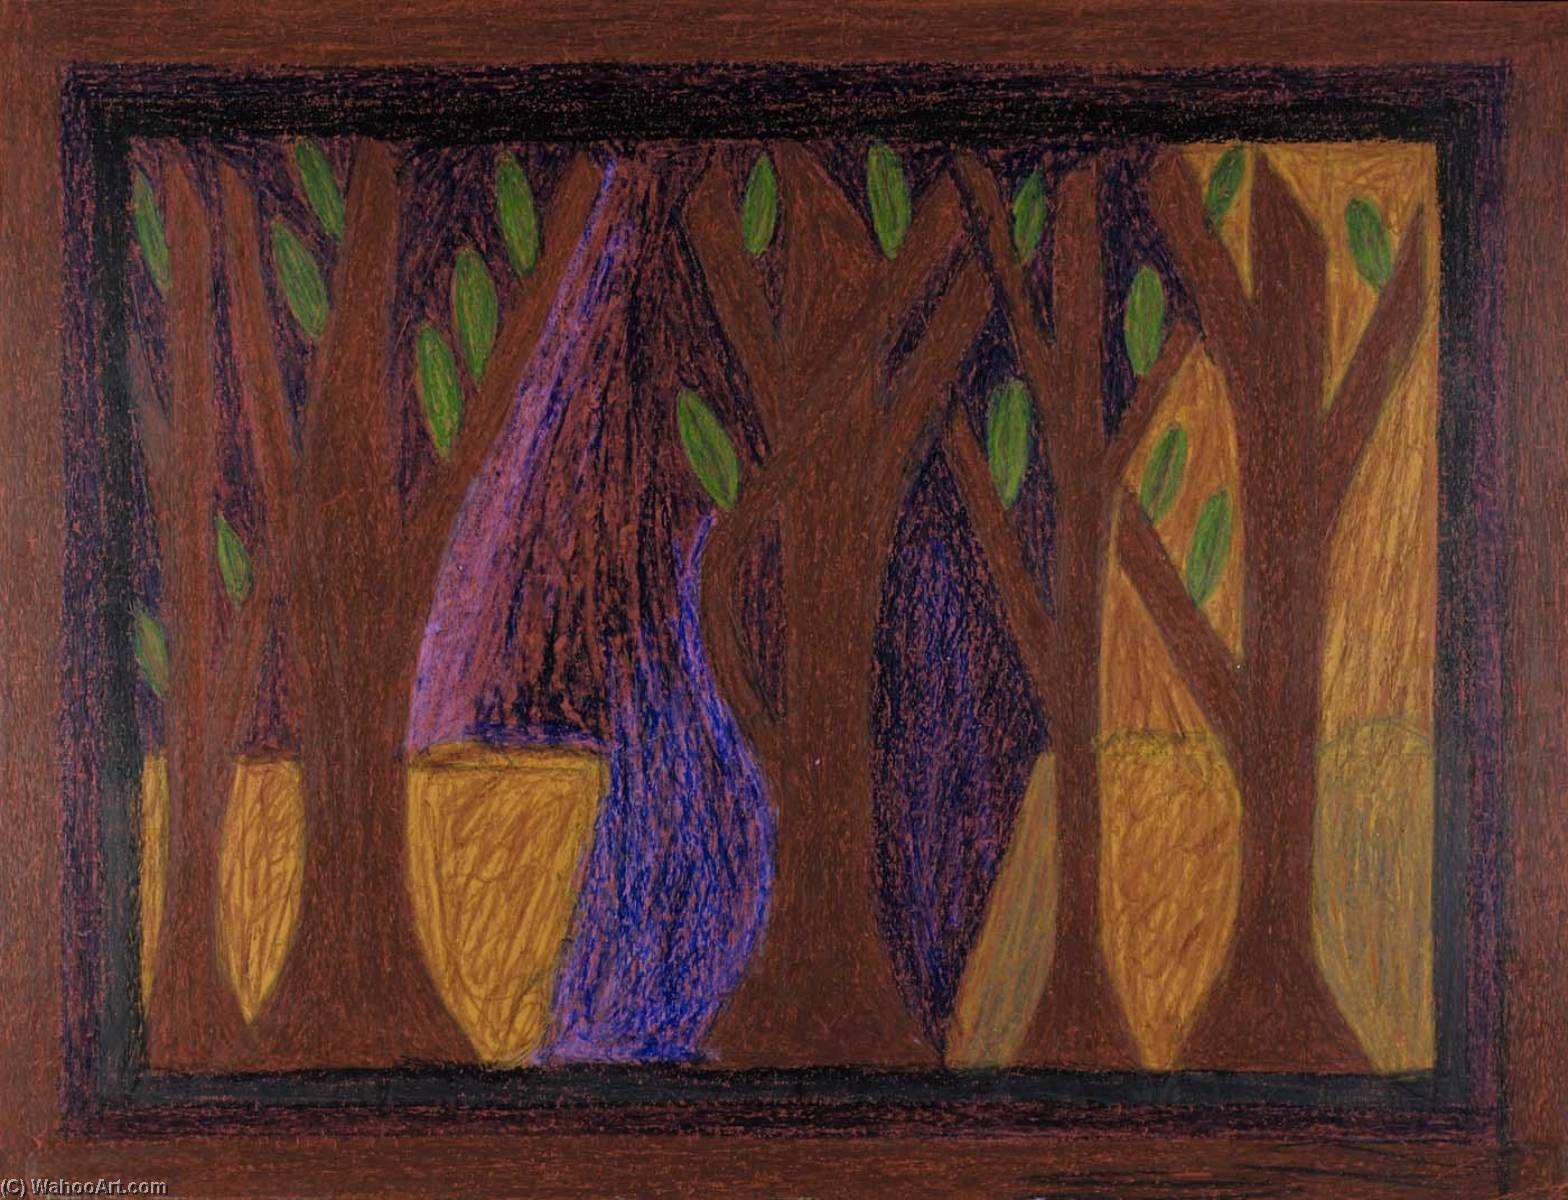 The Forest, 1964 by Eddie Arning | Art Reproductions Eddie Arning | WahooArt.com